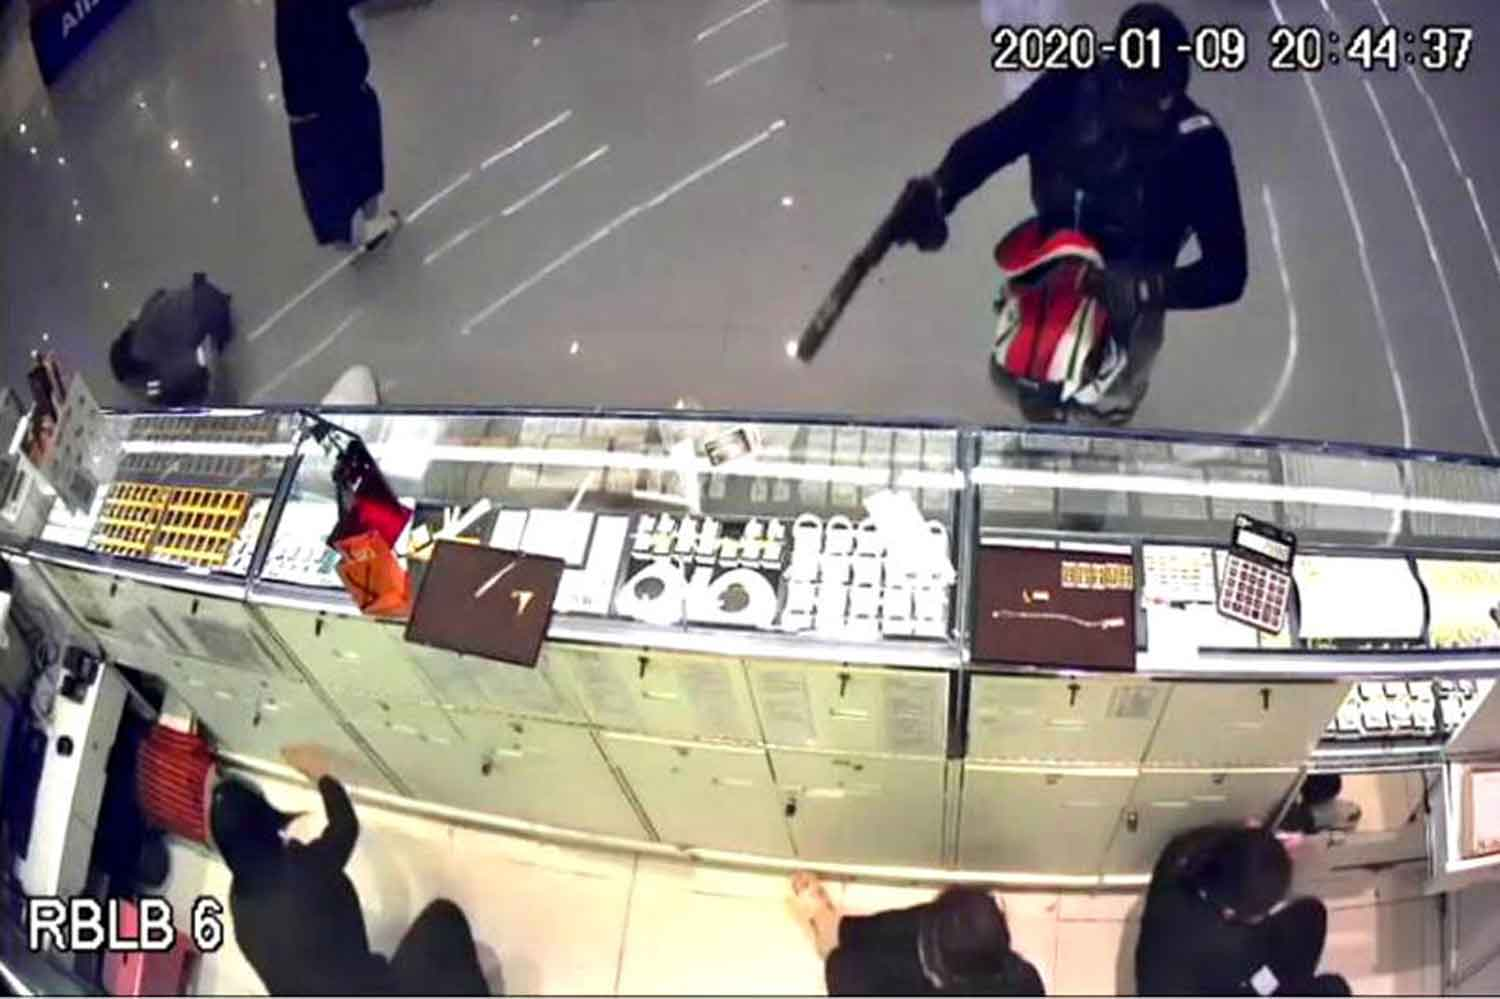 Surveillance camera footage shows the robber at the counter of the Aurora gold shop in Robinson department store in Muang district, Lop Buri, on the night of Jan 9.